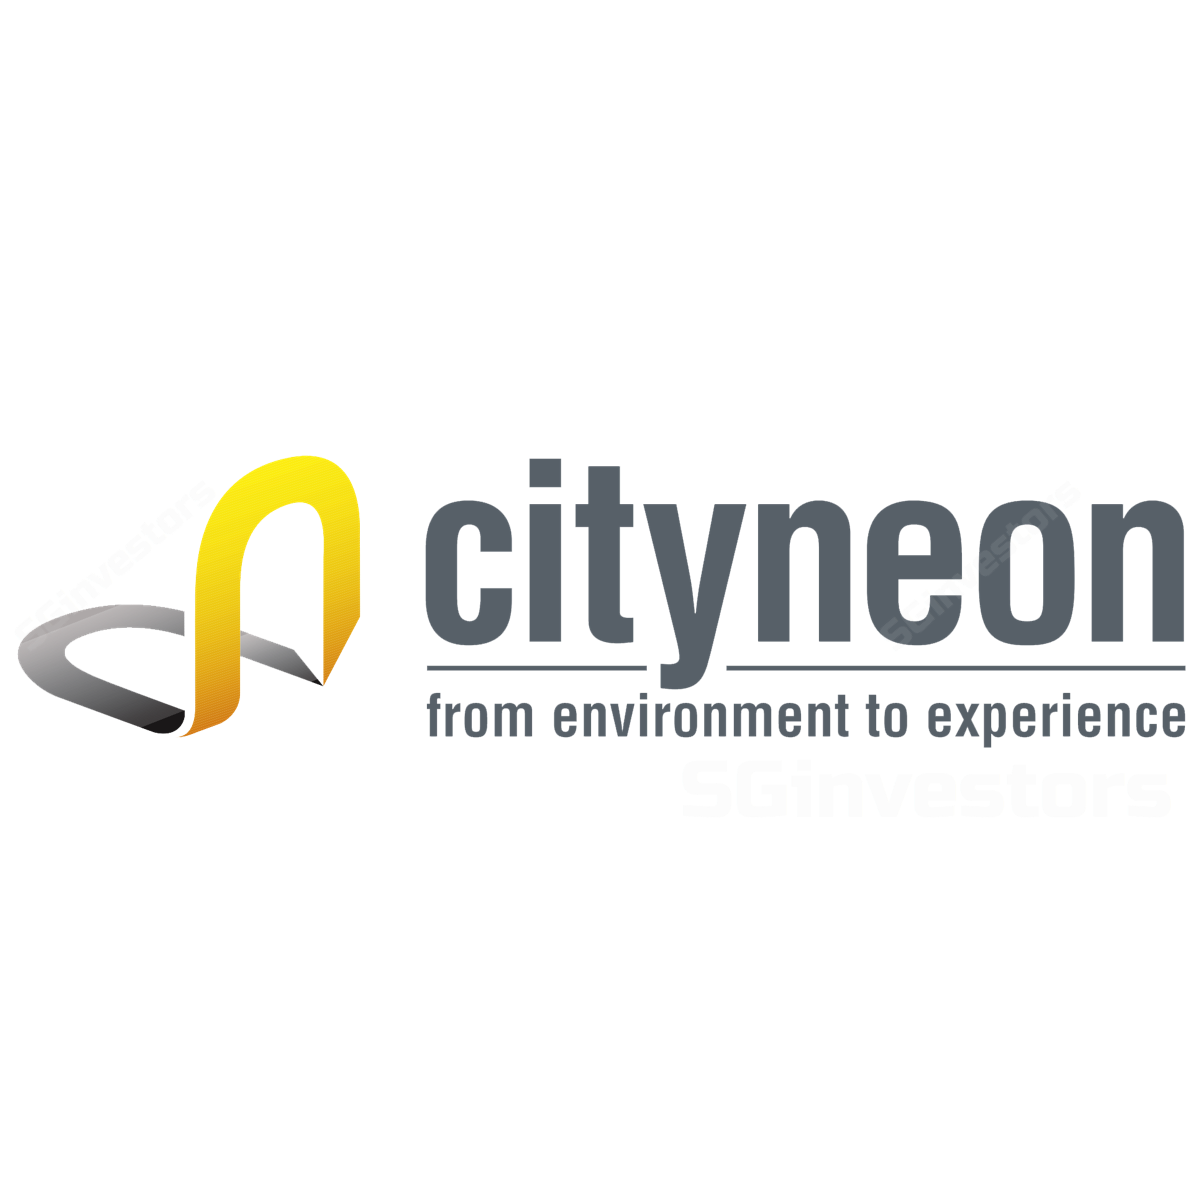 Cityneon Holdings - DBS Vickers 2016-12-29: Attractive growth profile